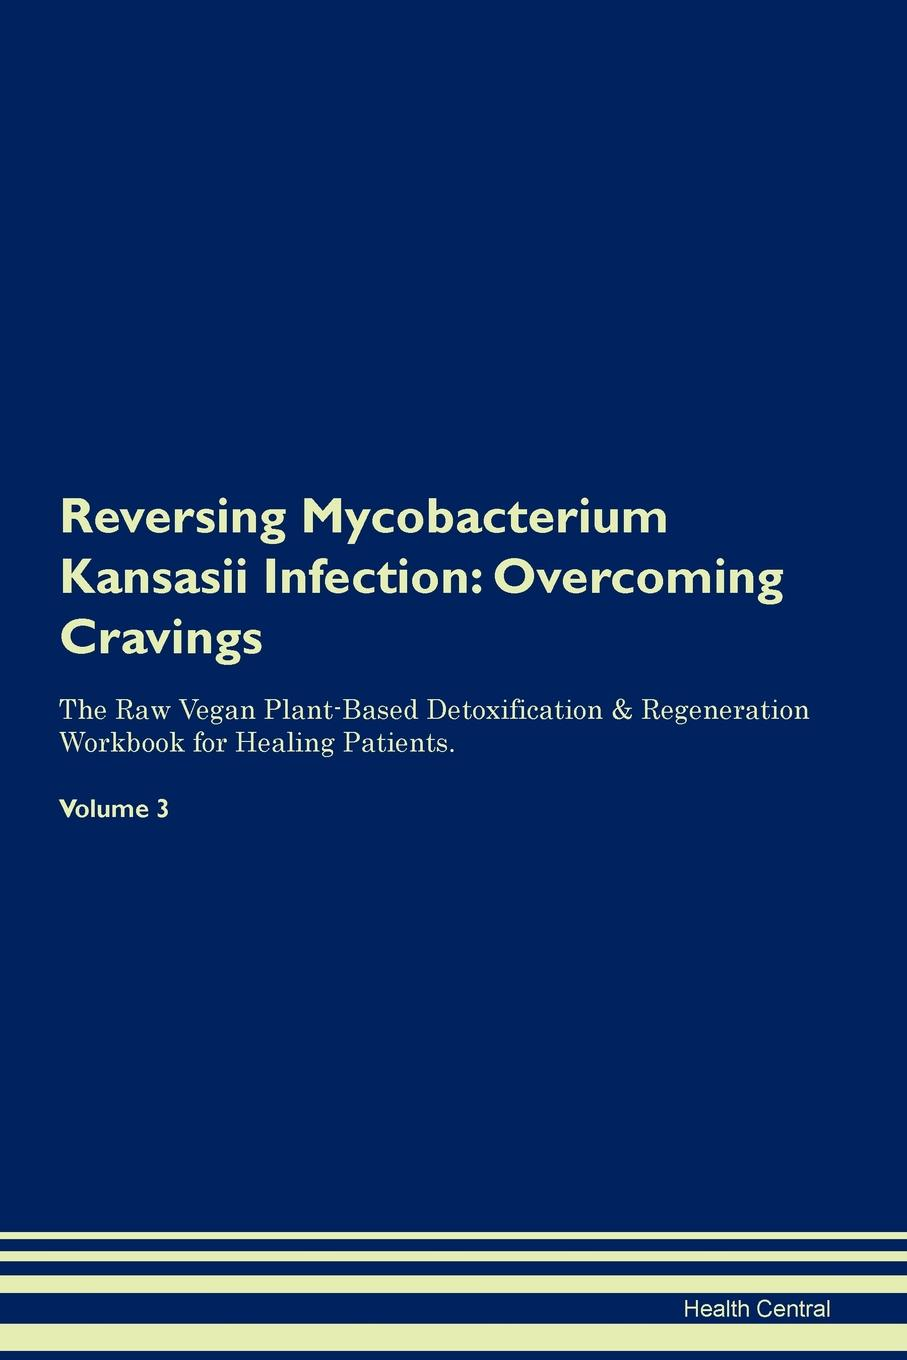 Health Central Reversing Mycobacterium Kansasii Infection. Overcoming Cravings The Raw Vegan Plant-Based Detoxification . Regeneration Workbook for Healing Patients. Volume 3 mycobacterium abscessus